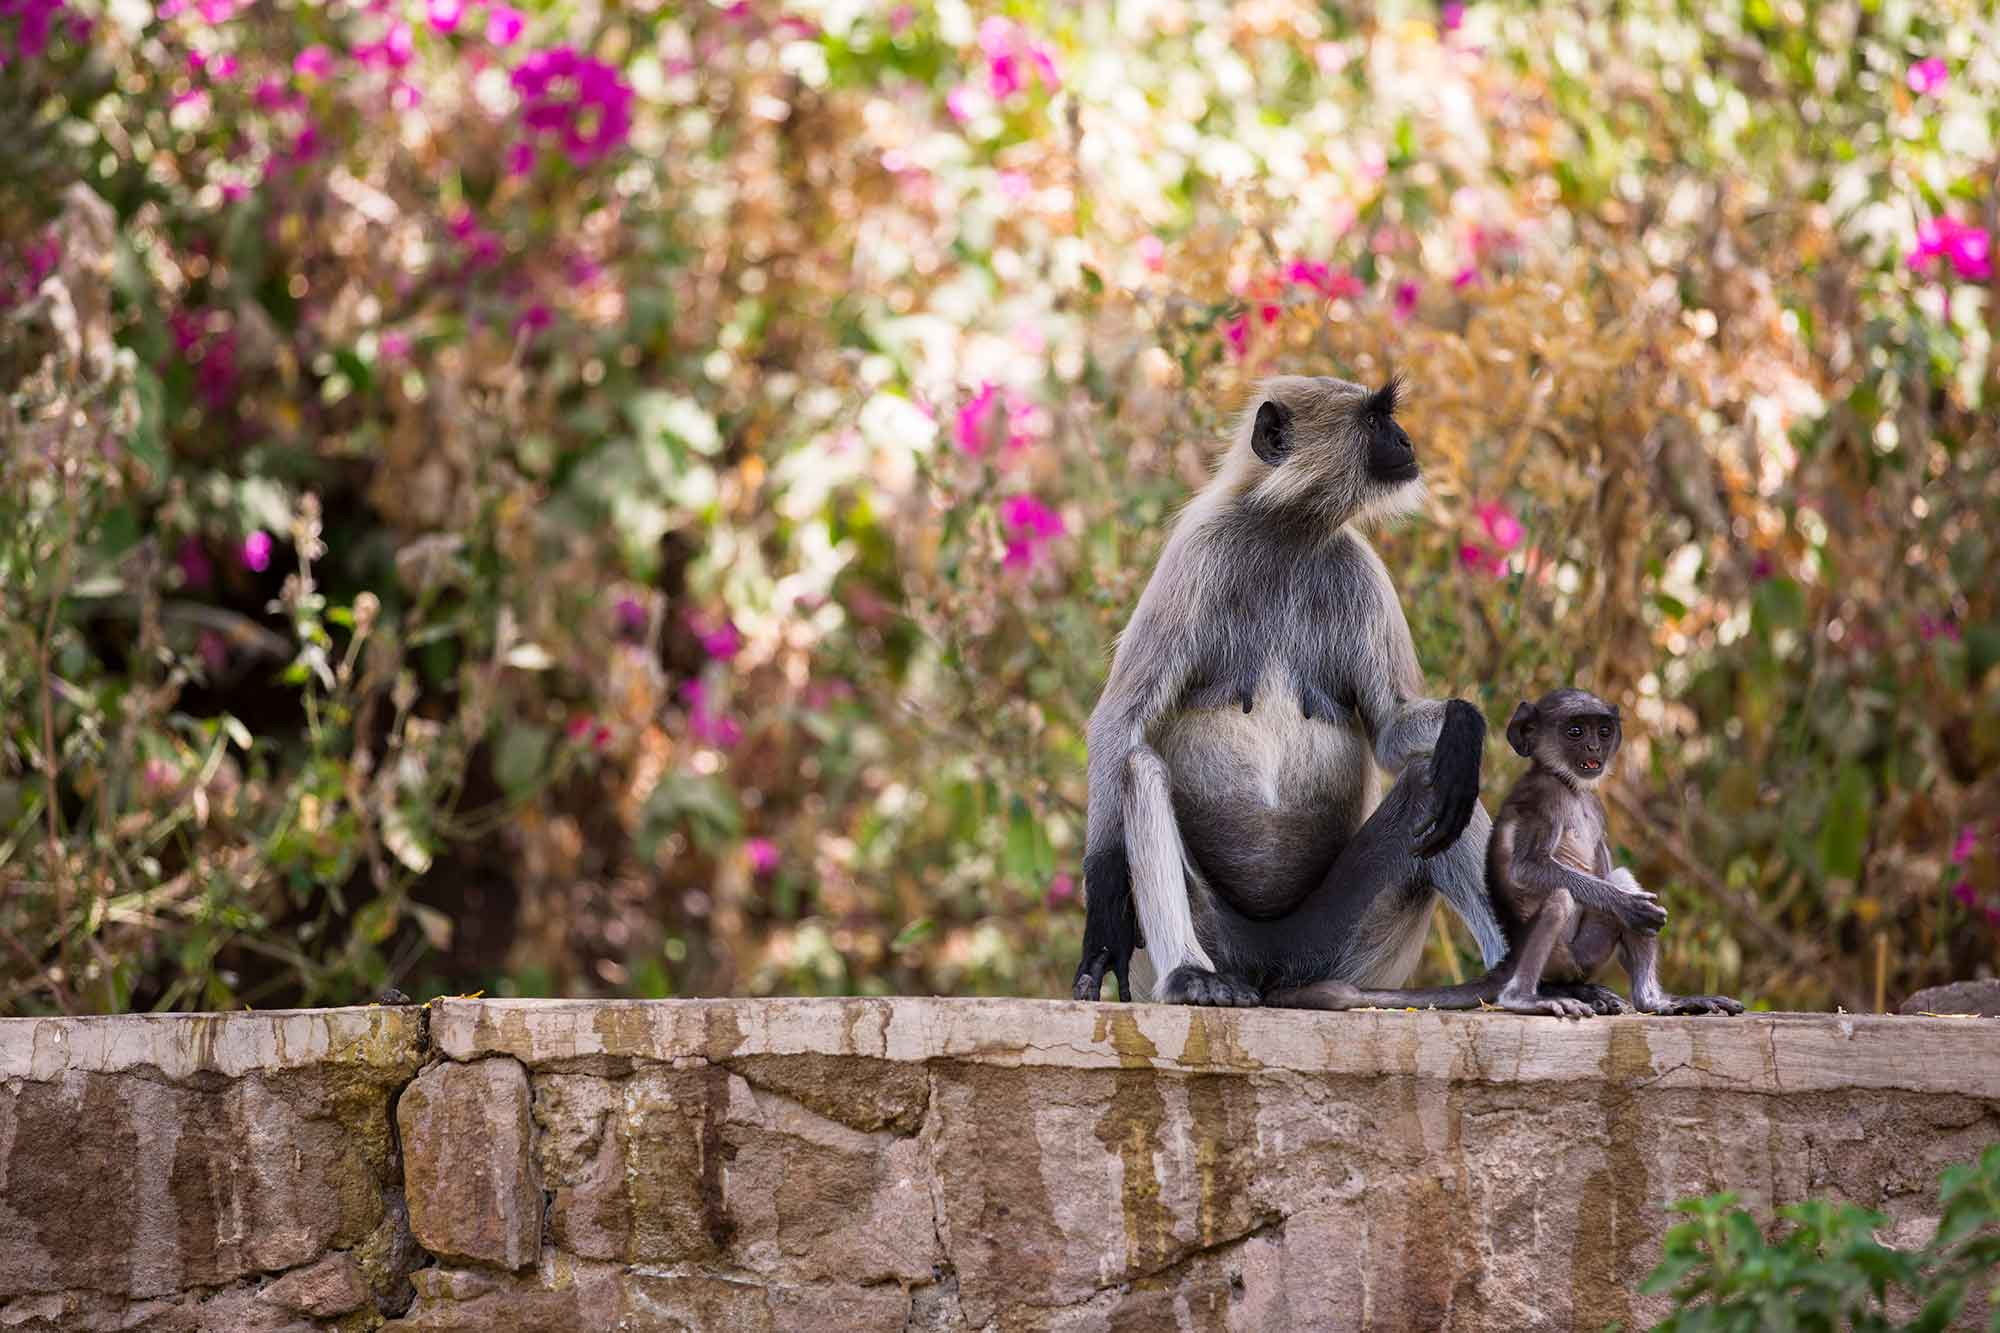 monkeys-jodhpur-temple-india